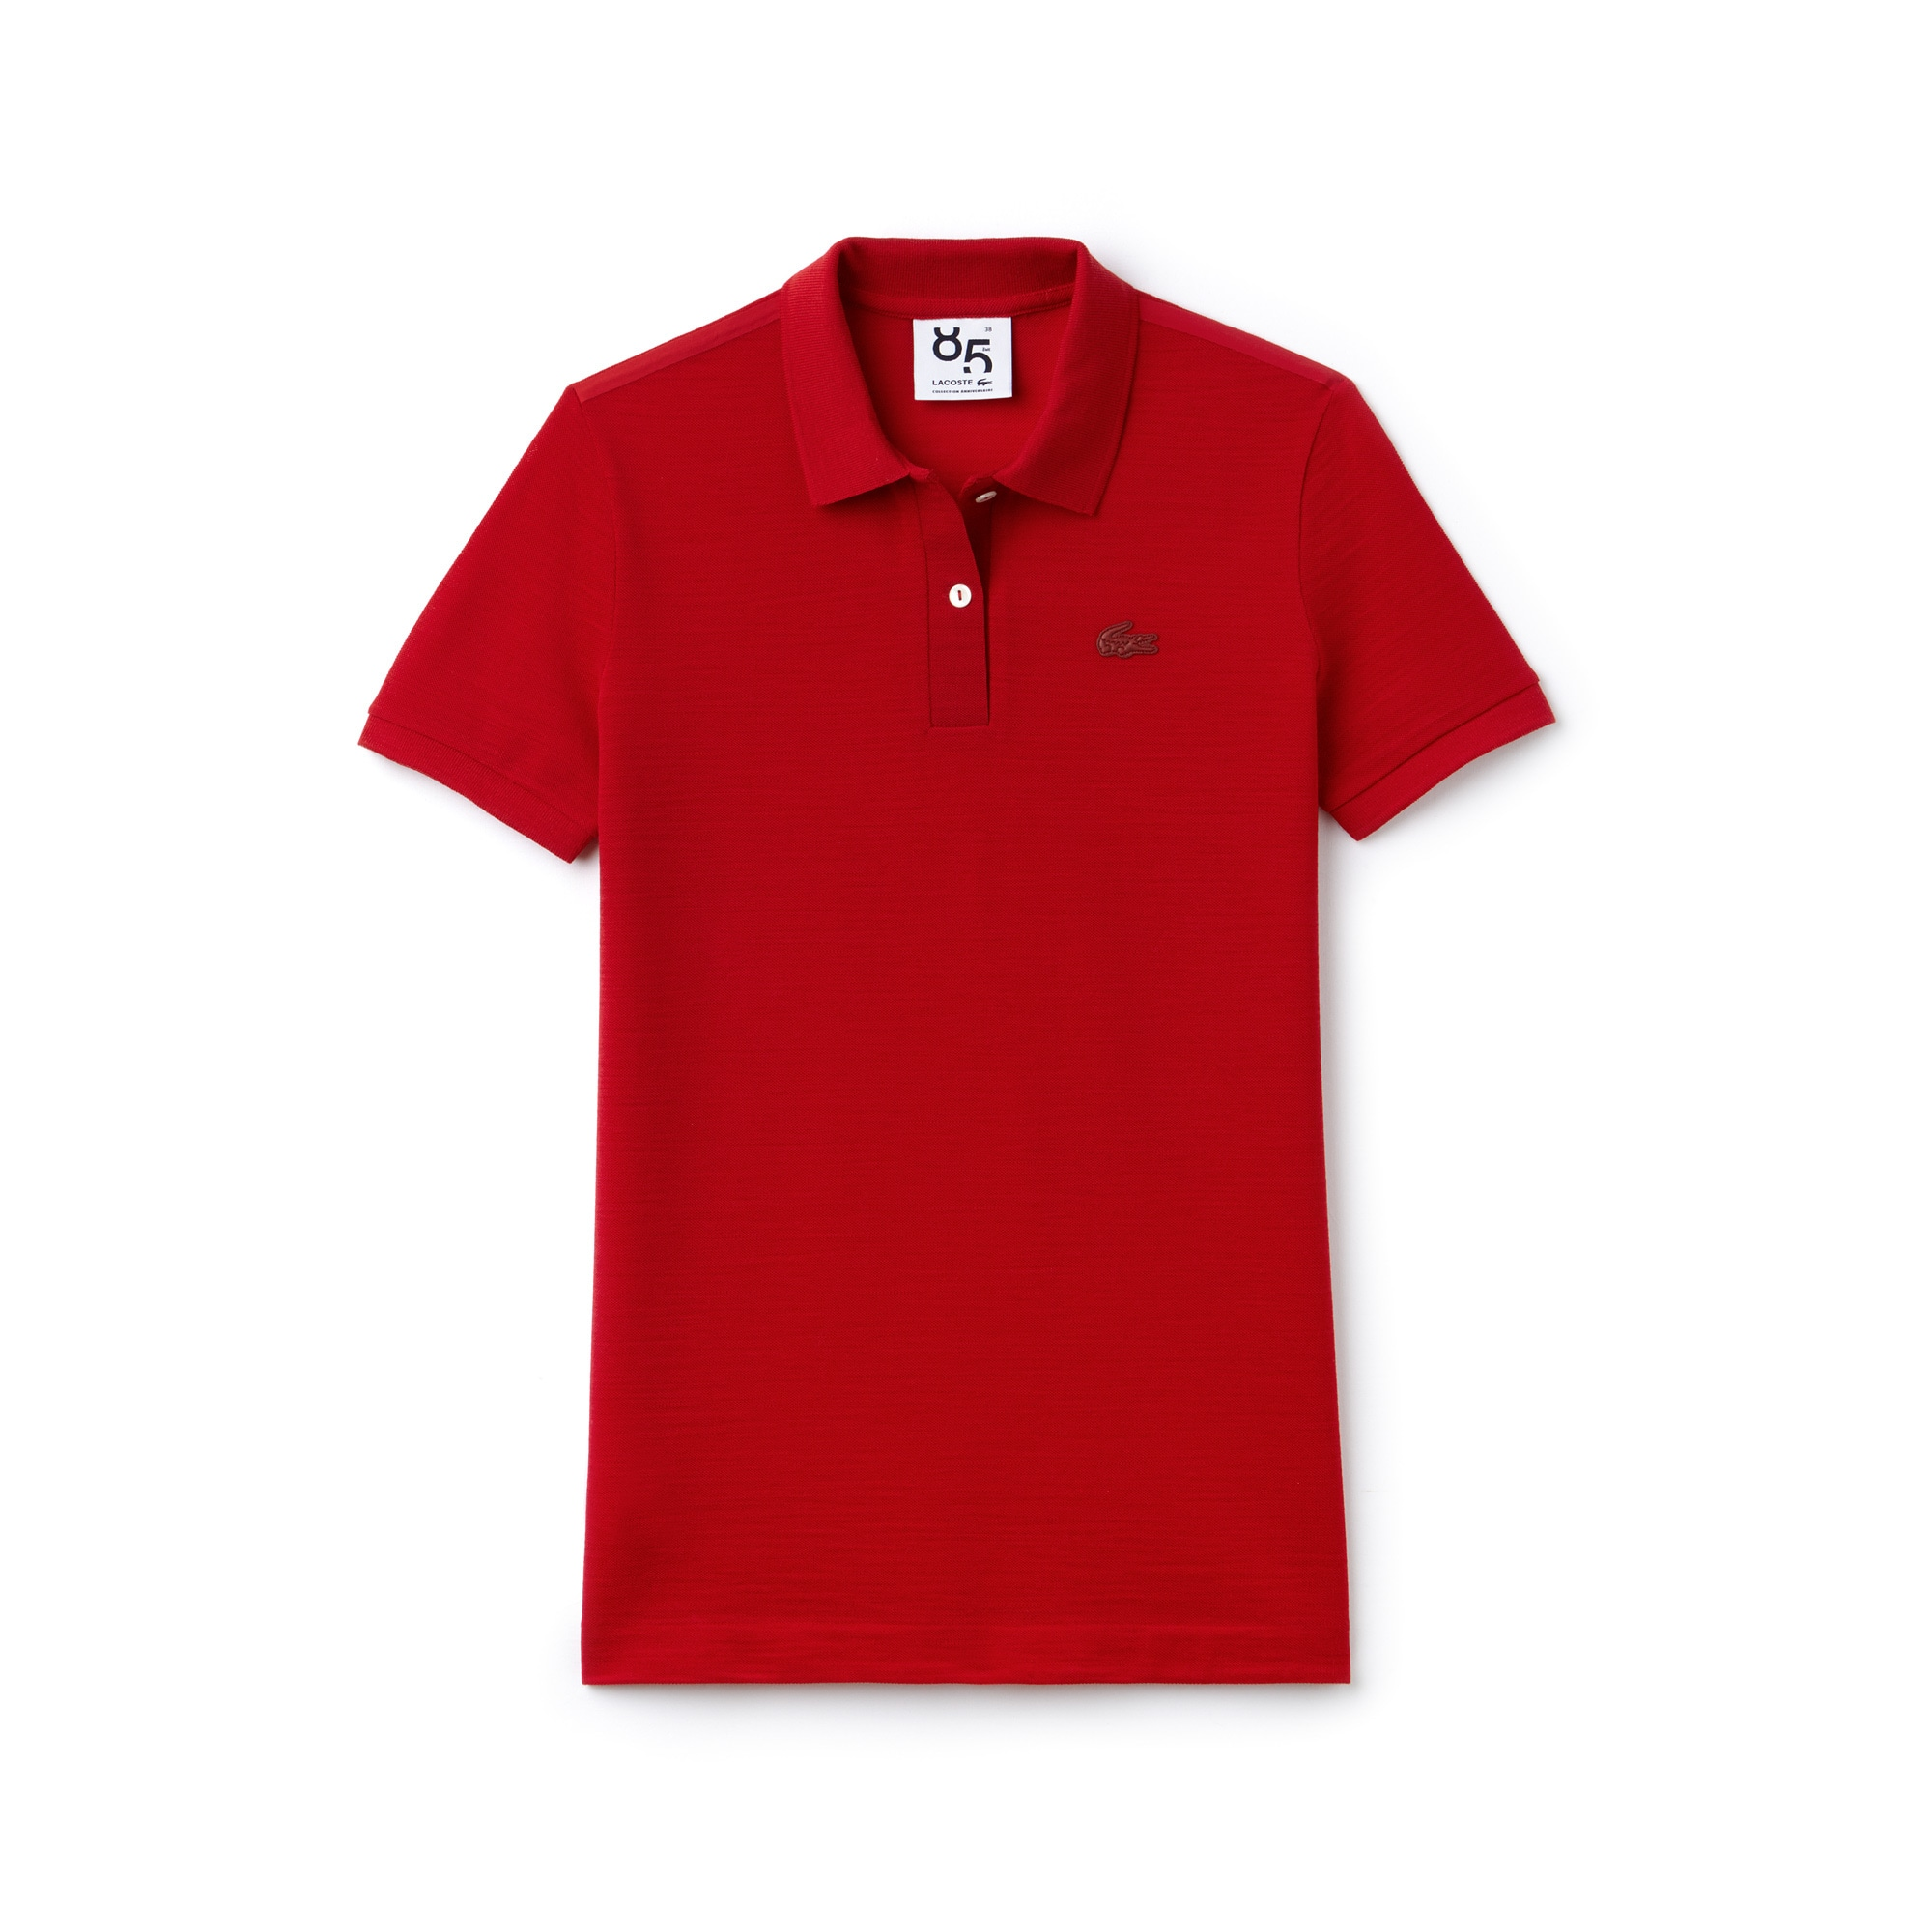 Women's Limited Edition 85th Anniversary Classic Fit Wool Piqué Polo